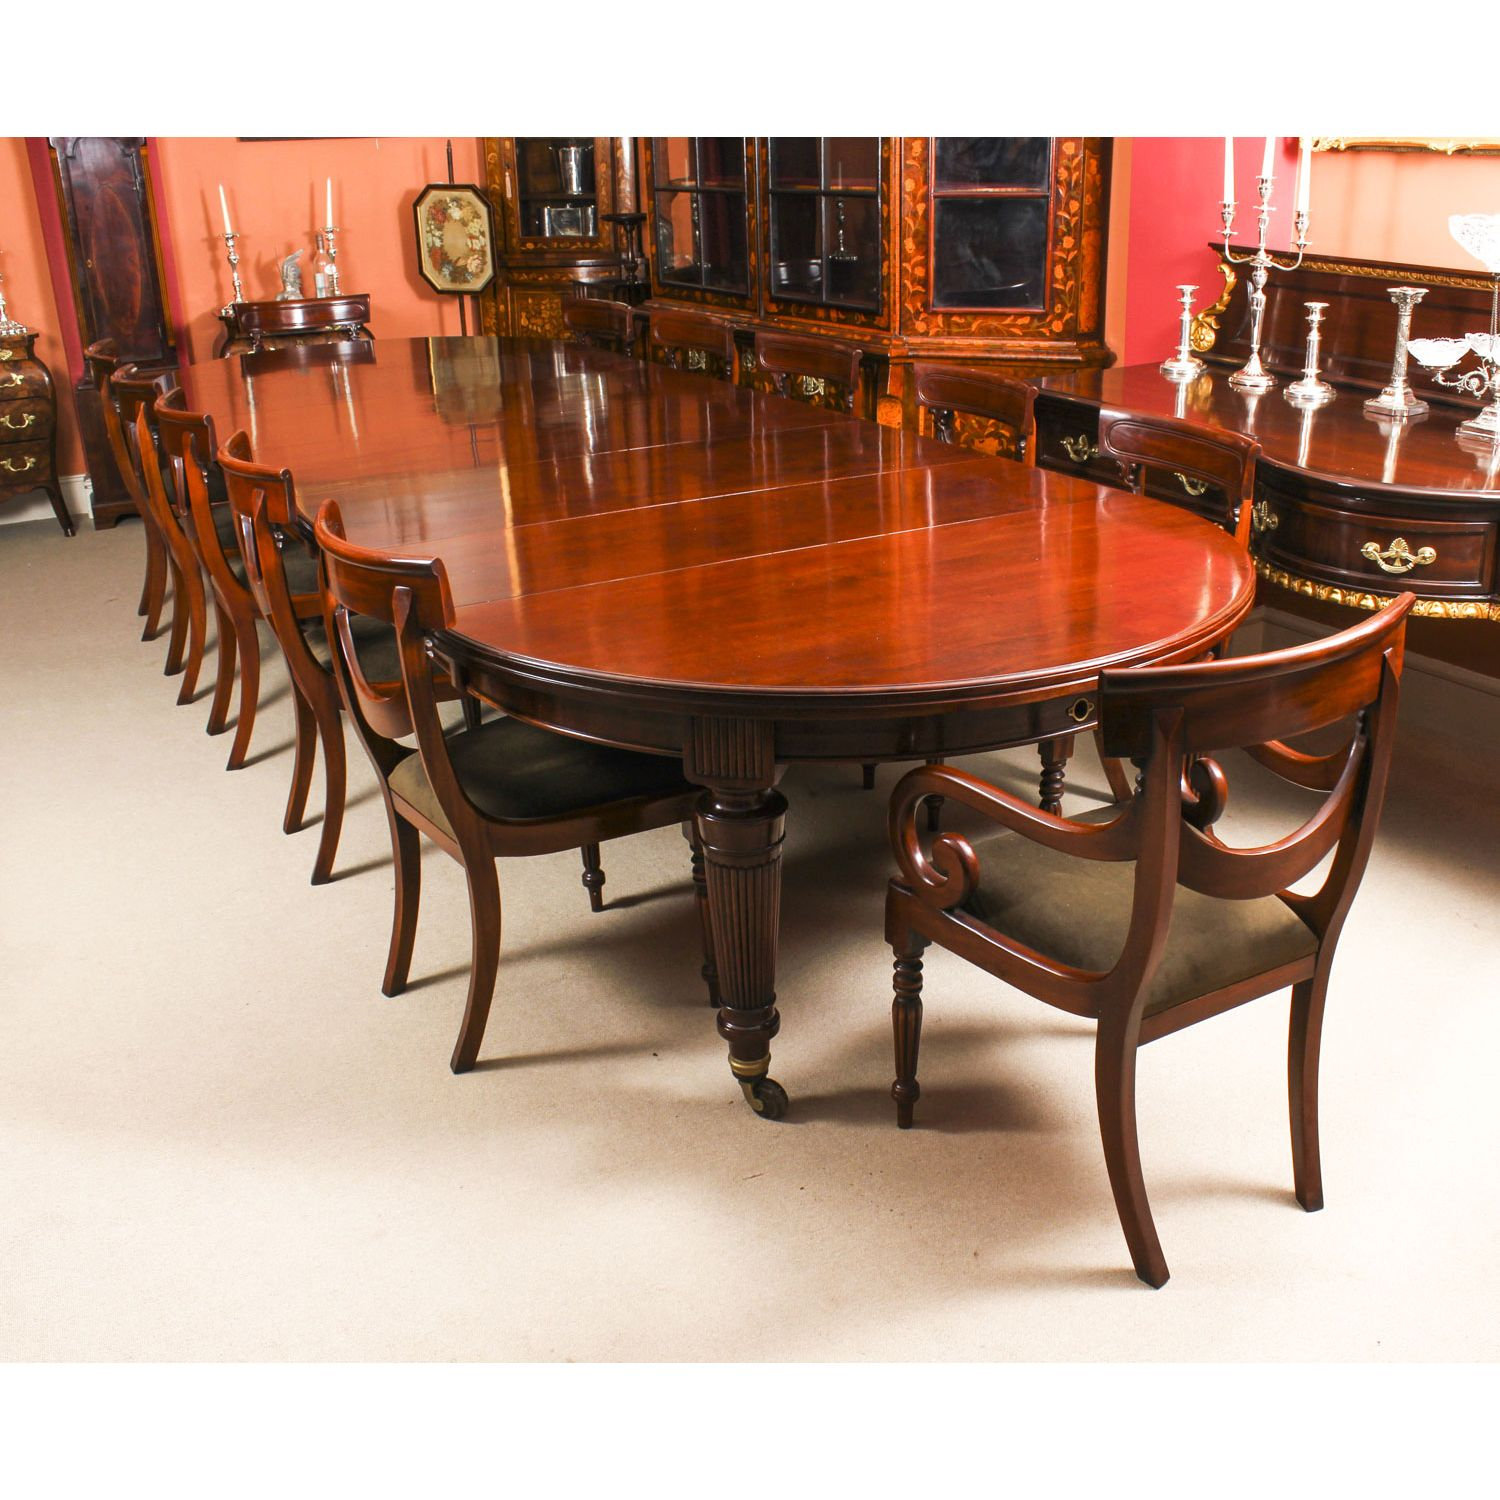 Antique Victorian Extending Dining Table C1870 12 Bespoke Swag